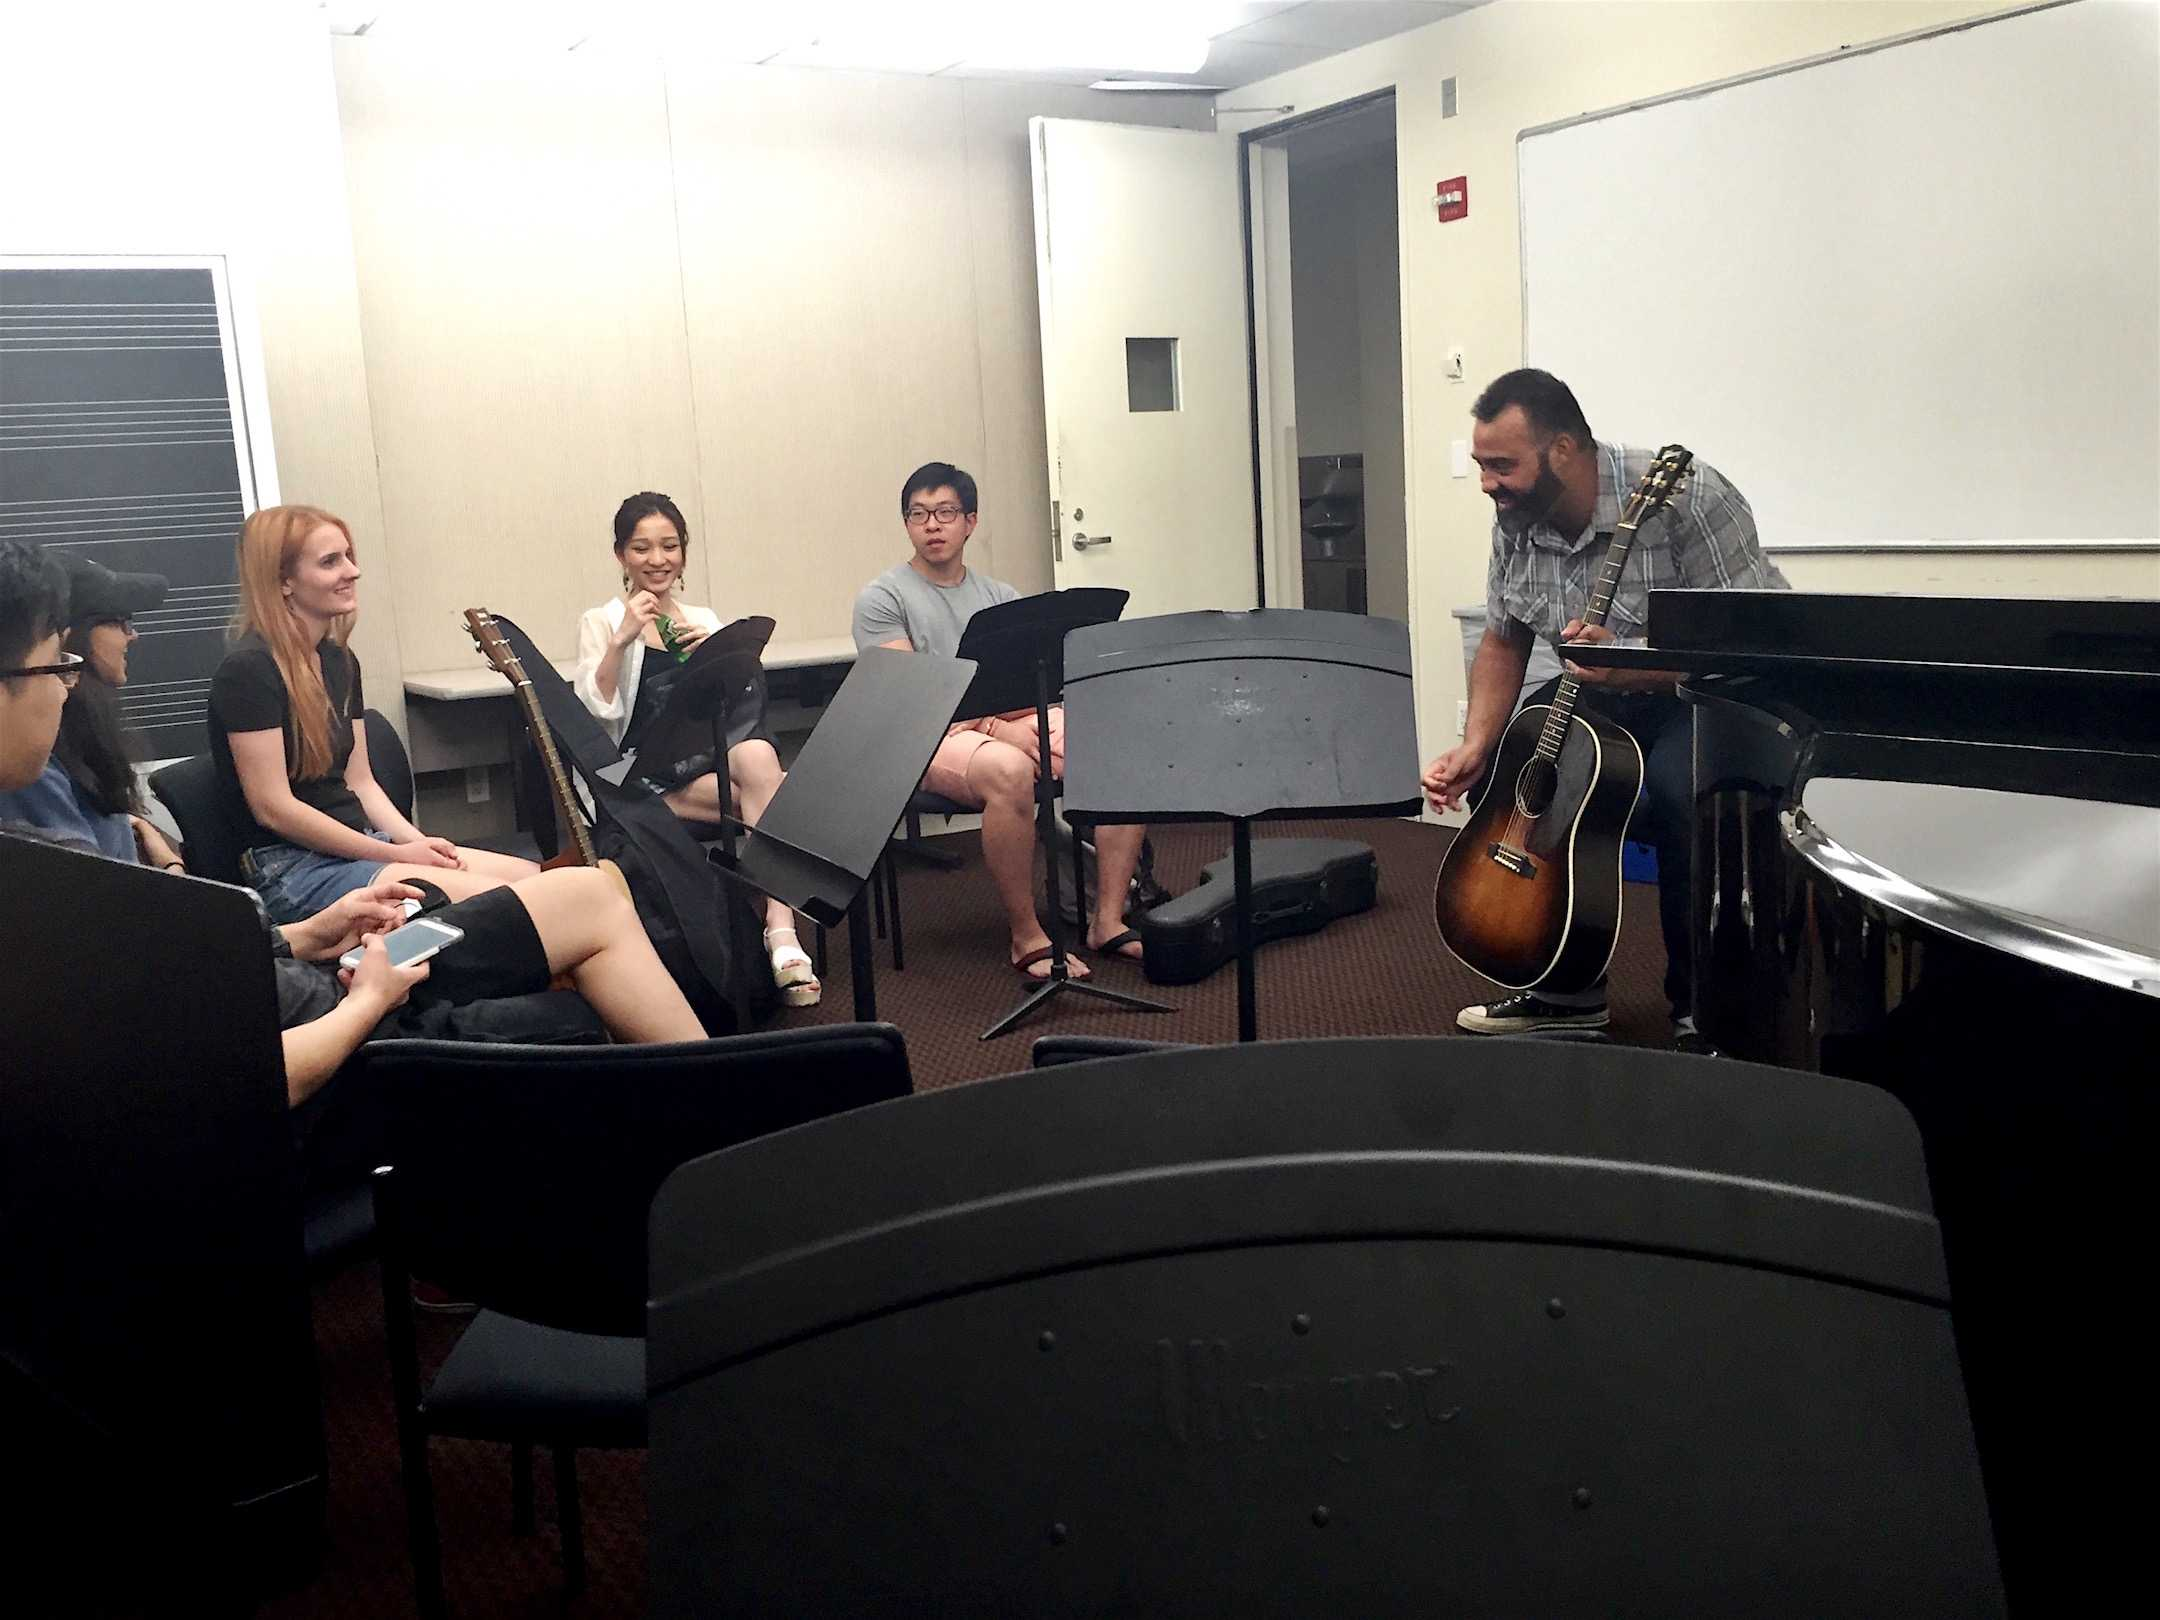 Steinhardt offers a number of individual and group music lessons for almost all instruments.